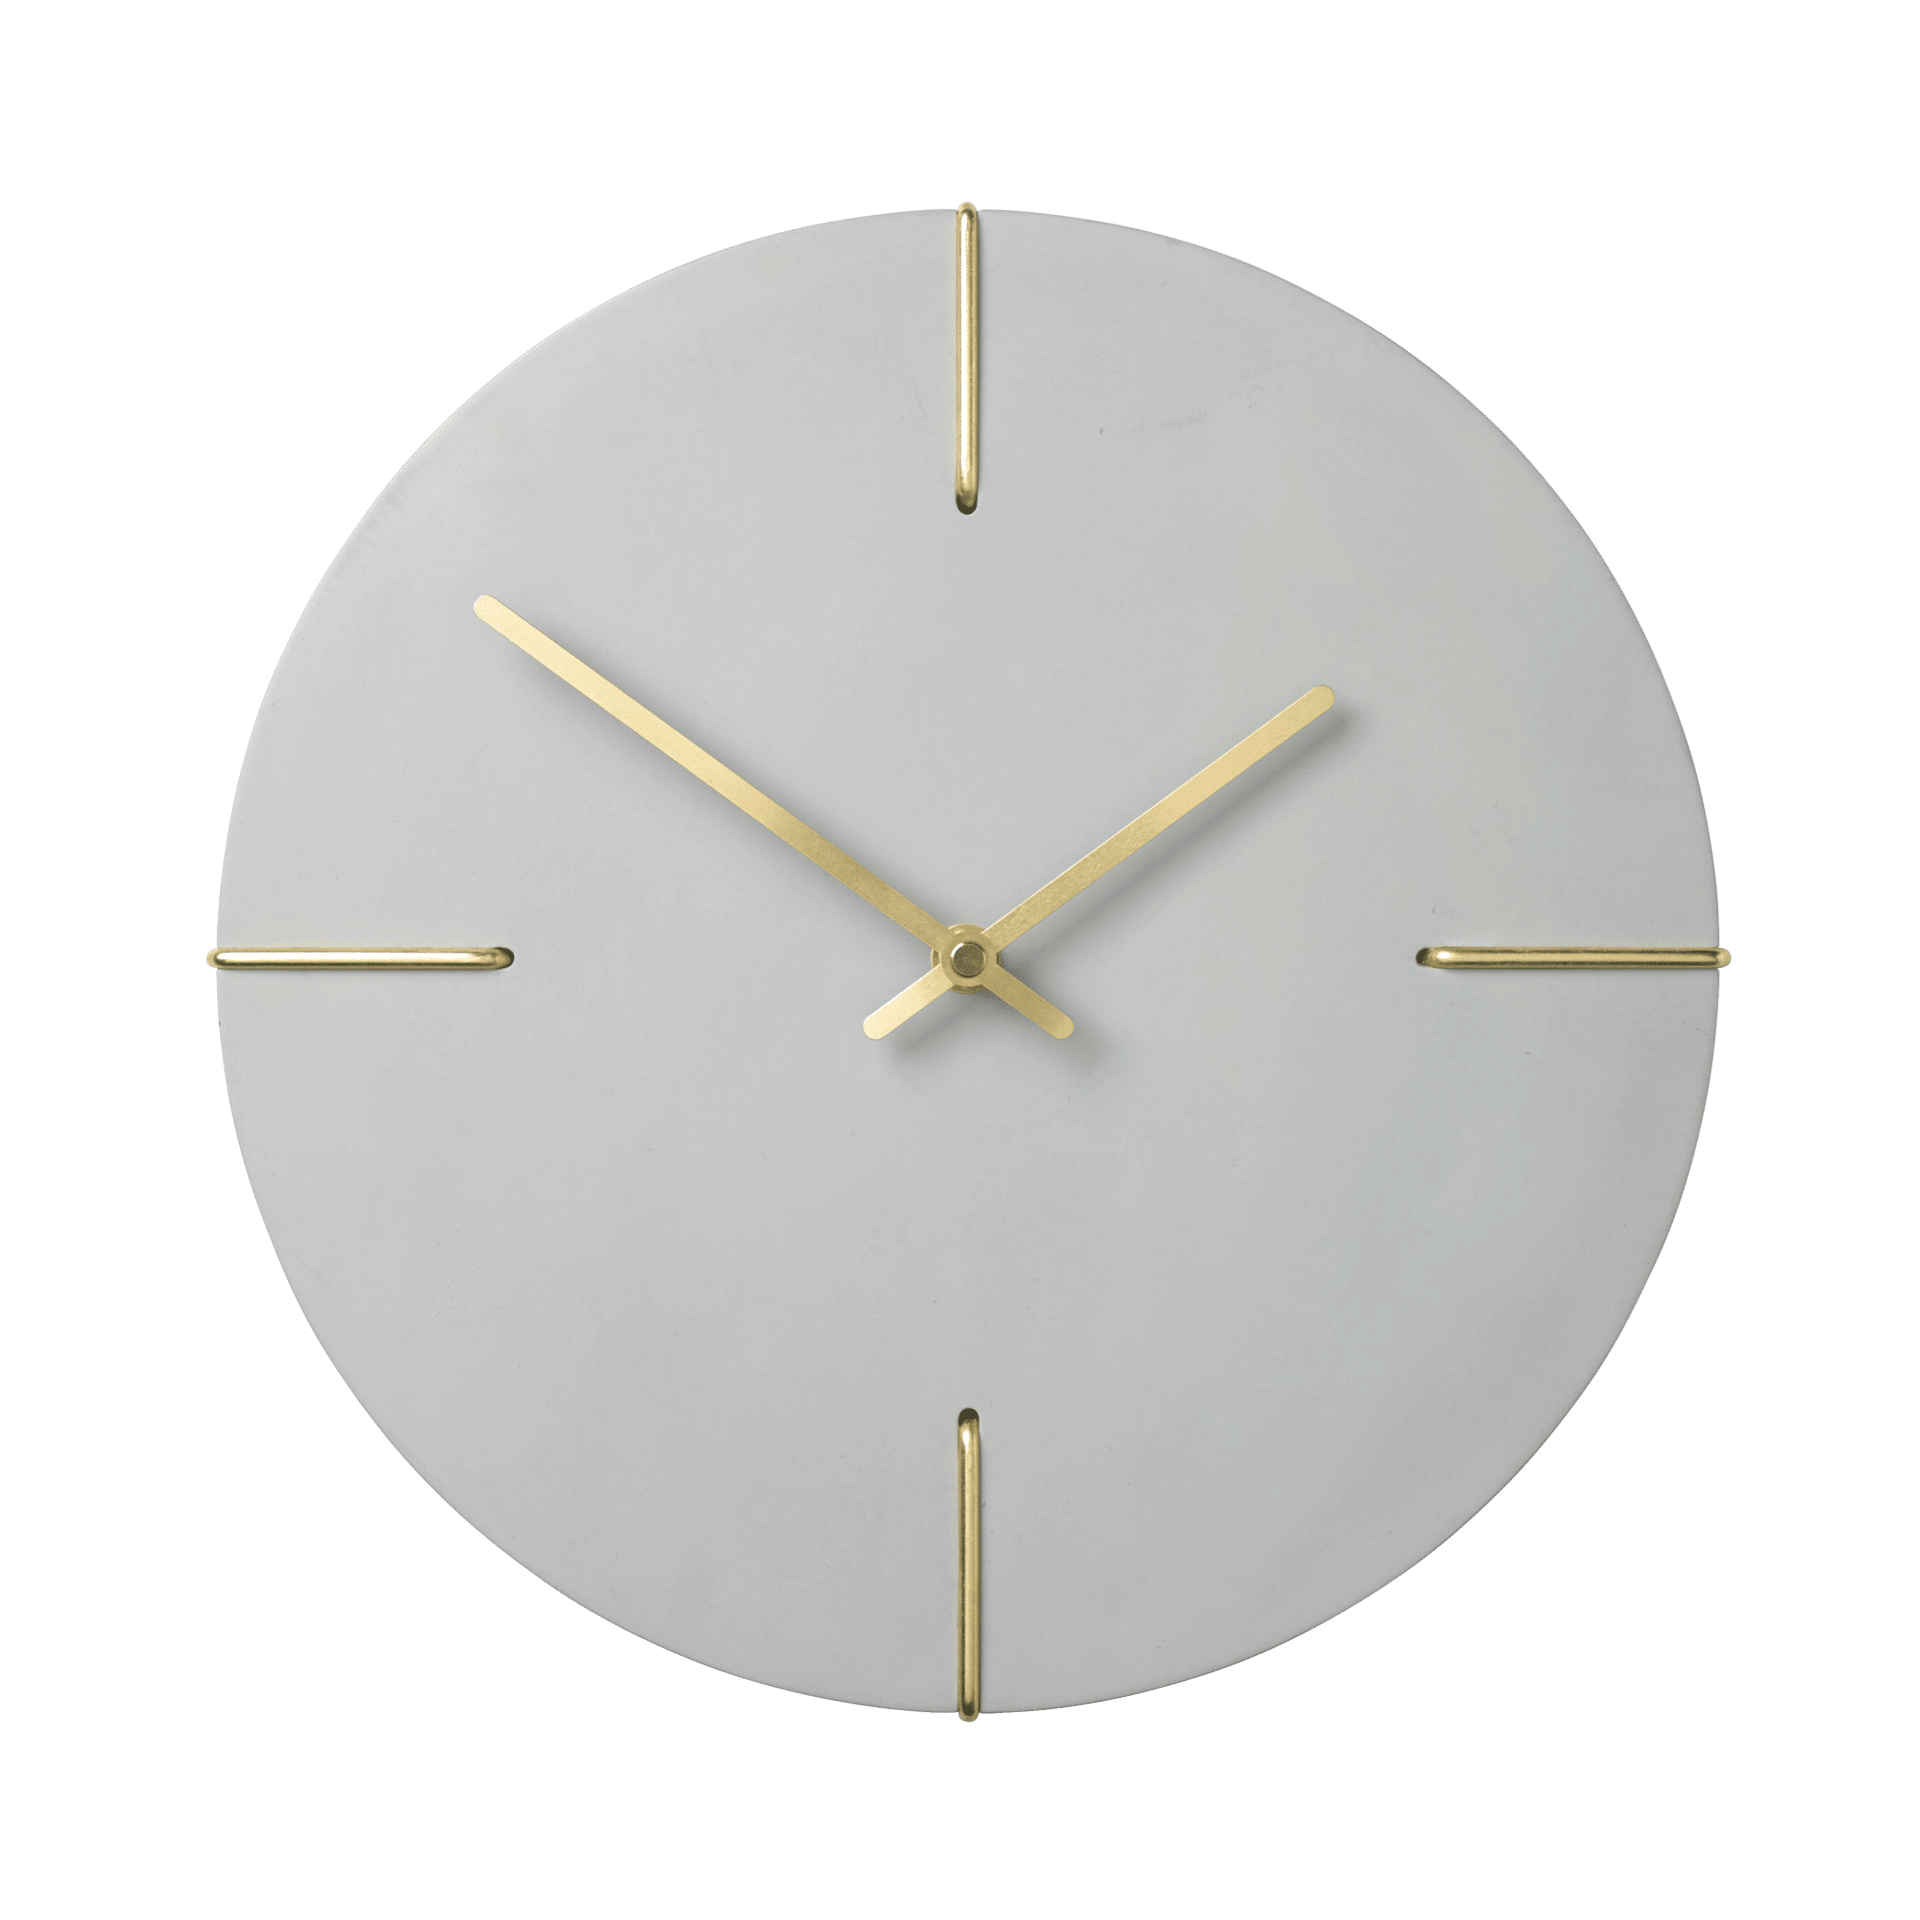 The Trimester Wall Clock In Light Grey By Bolia Comes In A Gorgeous Light  Grey Colour, And Is The Perfect Compliment To A Minimalist Interior.